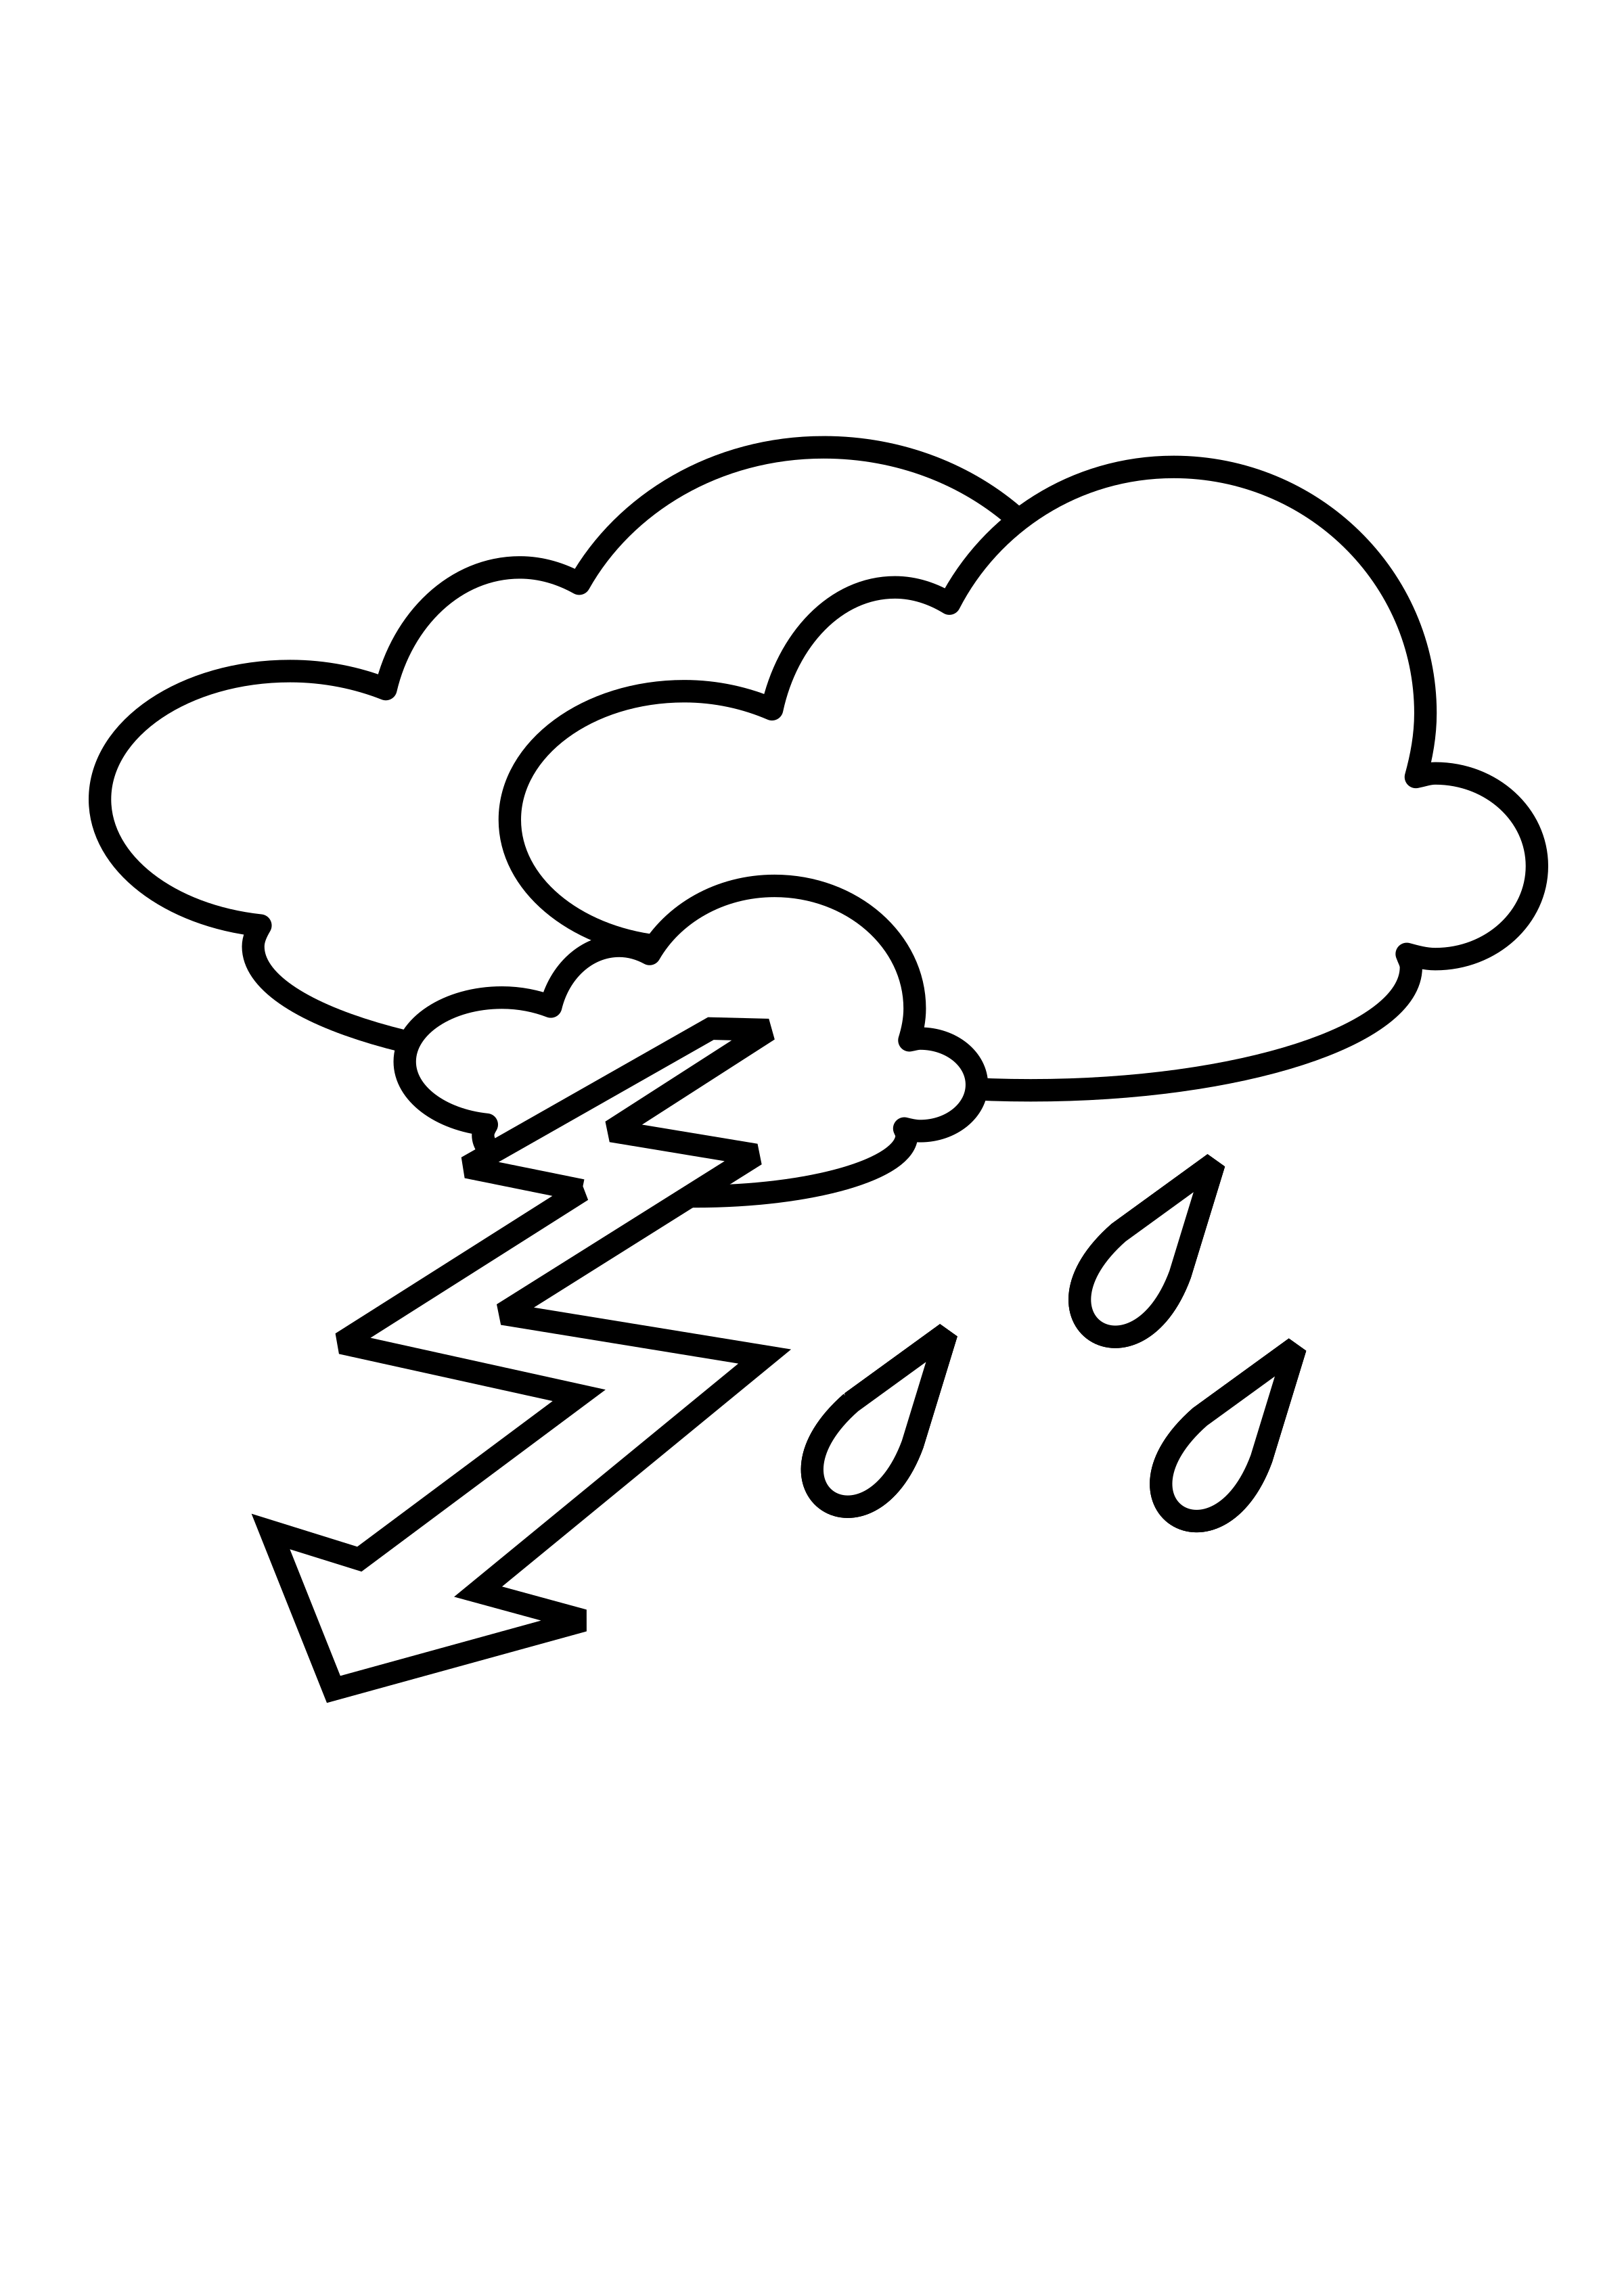 Lightning clipart stormy. Outline big image png